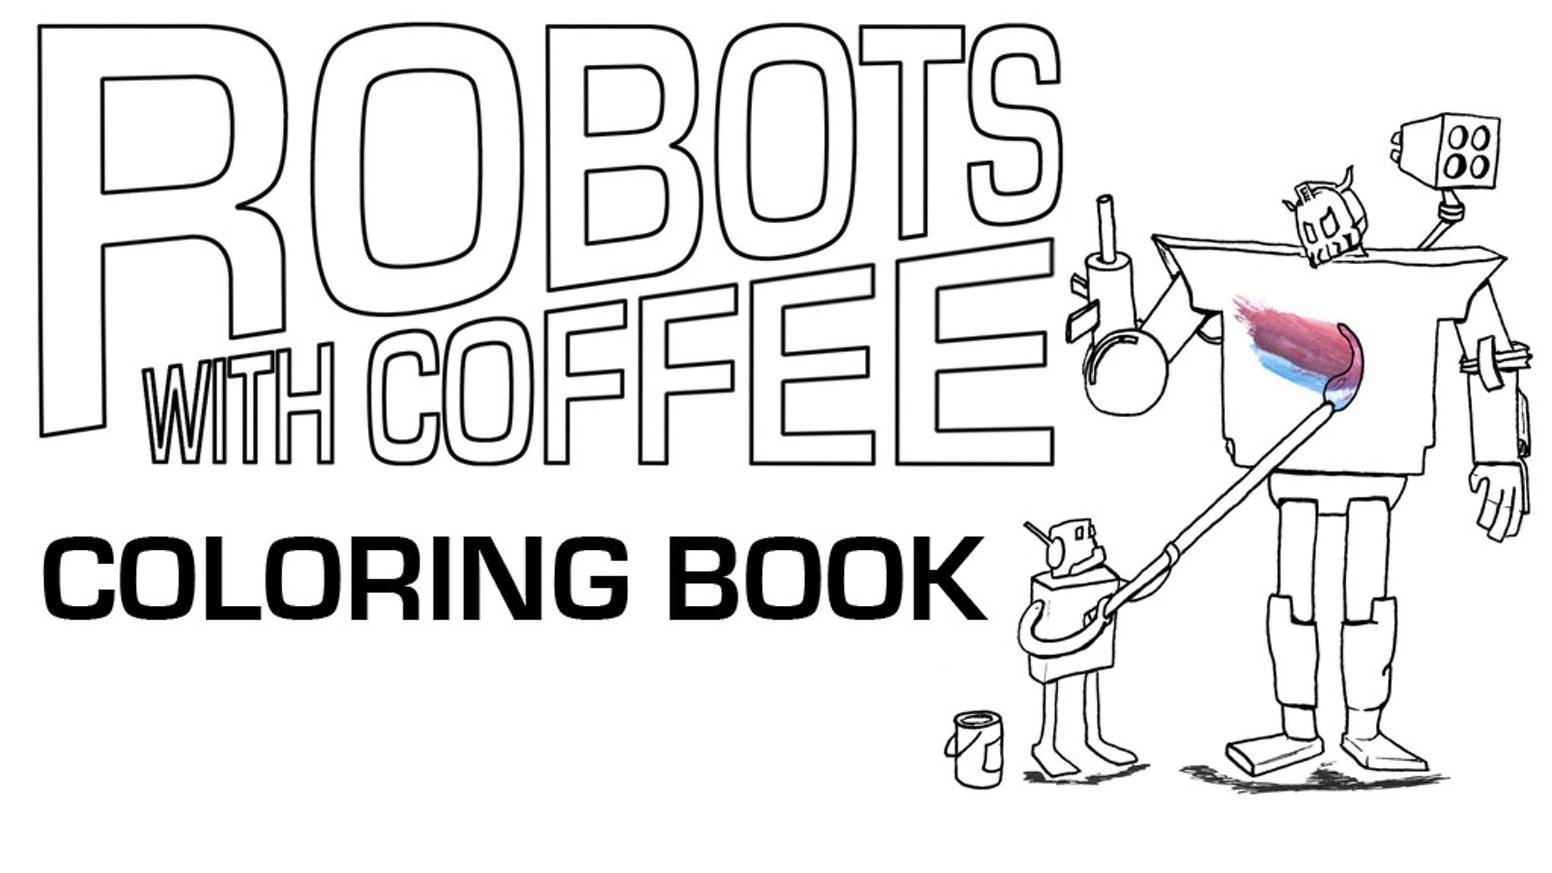 Robots With Coffee Coloring Book by Paul Czarnowski